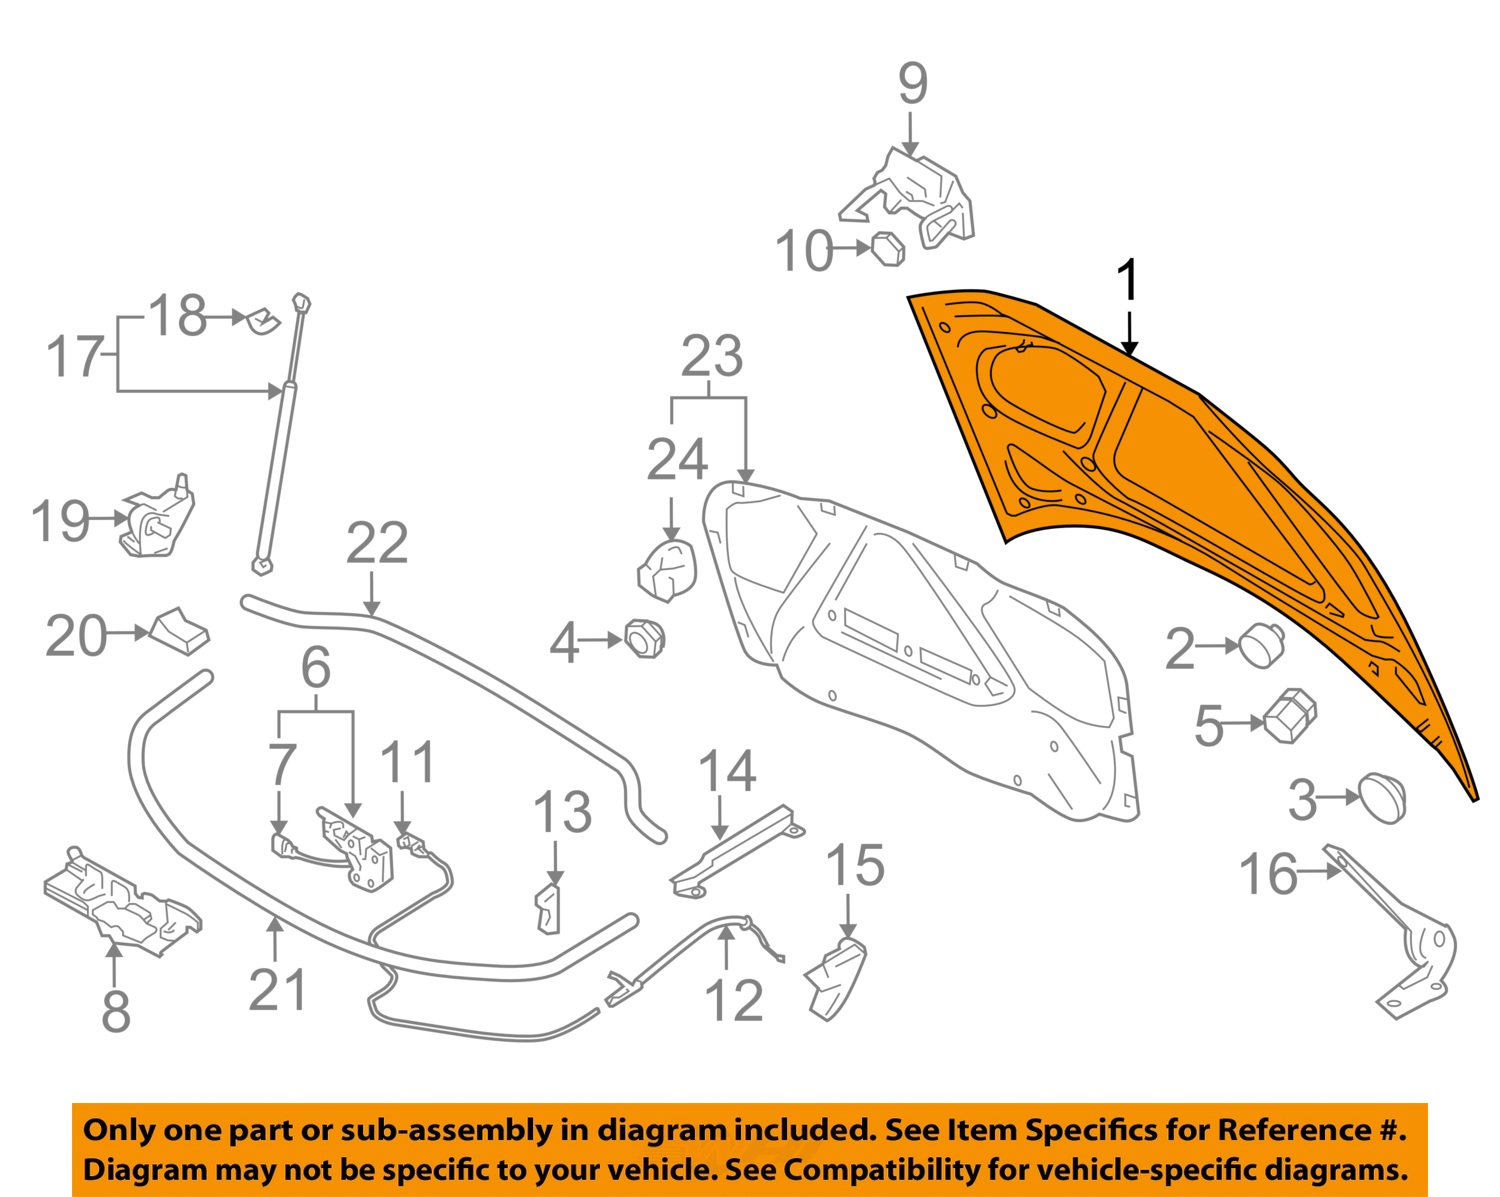 2000 Vw Jetta Hood Latch Diagram Schematics Data Wiring Diagrams New Beetle Engine Free Image For User Manual Download 2008